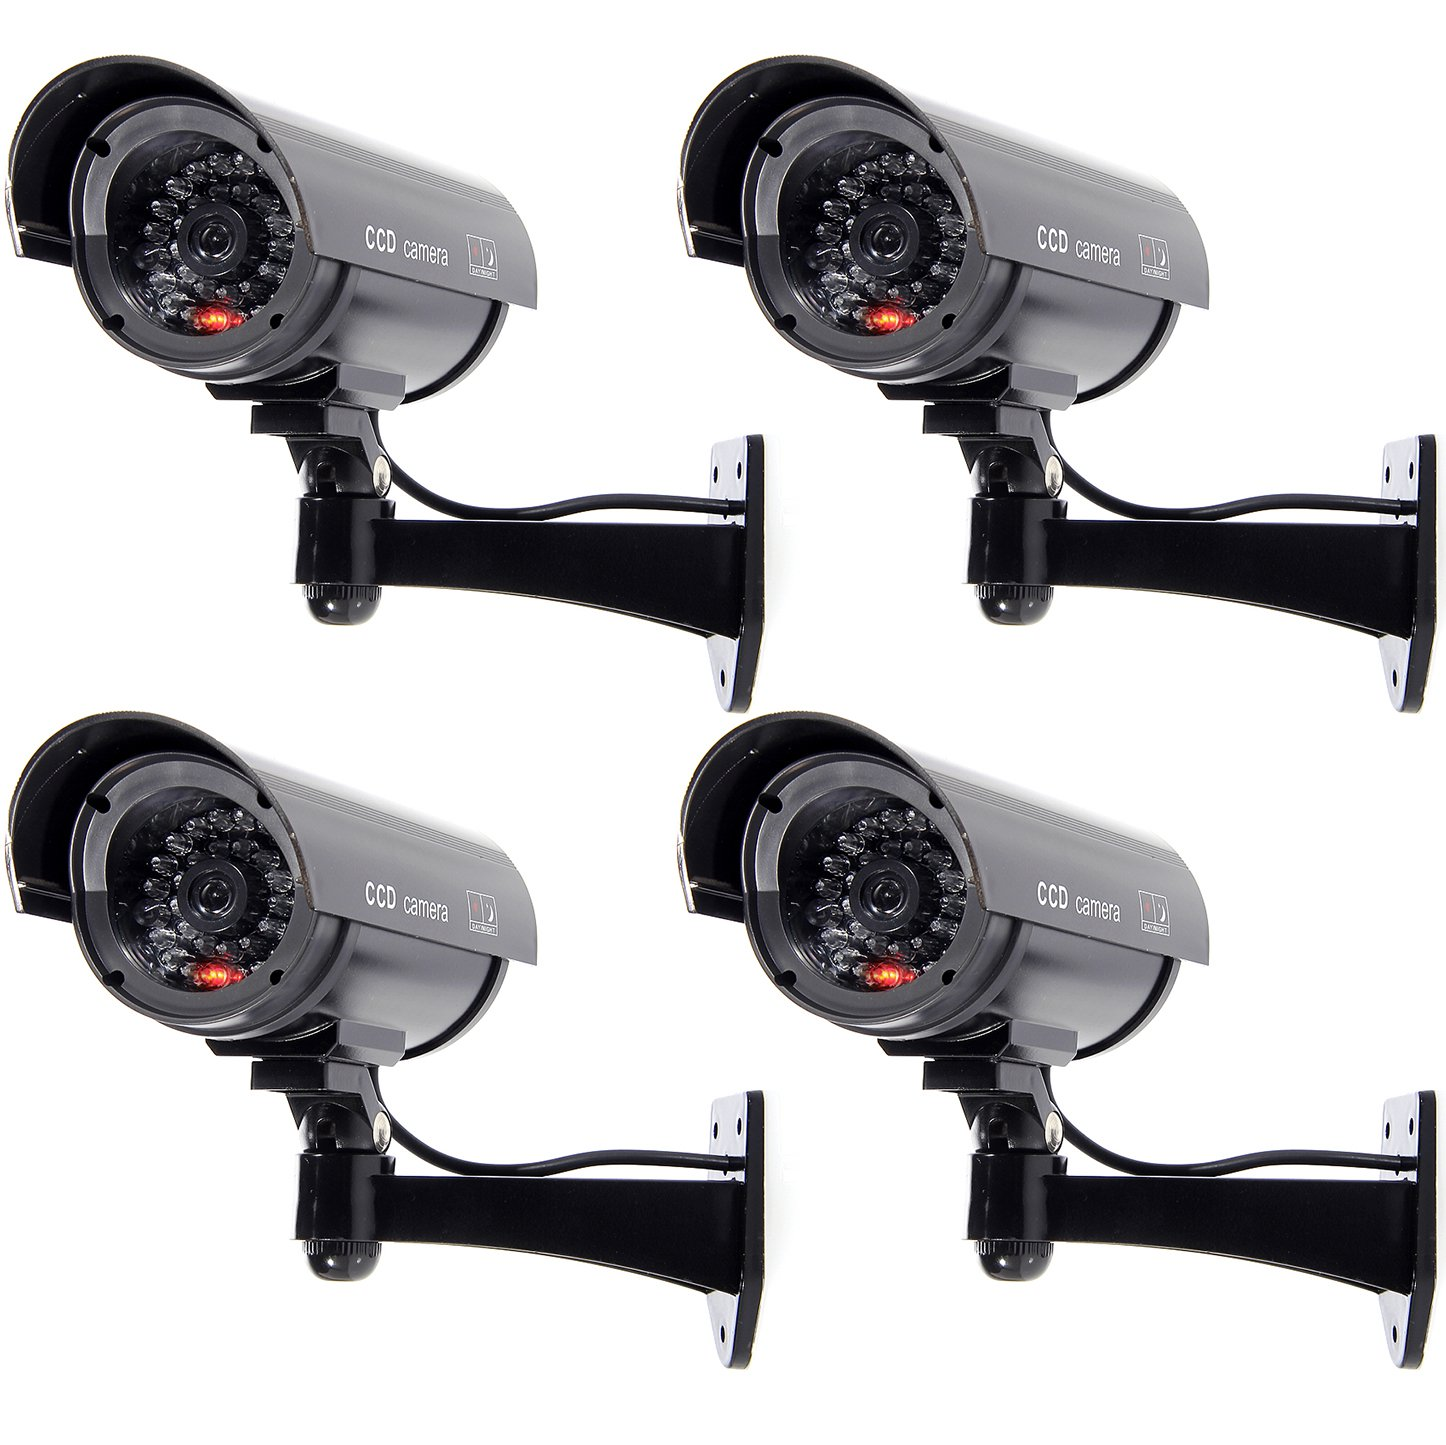 WALI Bullet Dummy Fake Surveillance Security CCTV Dome Camera Indoor Outdoor 1 Flashing LED Light + Warning Security Alert Sticker Decals WL-B1-4 (Black), 4 Pack